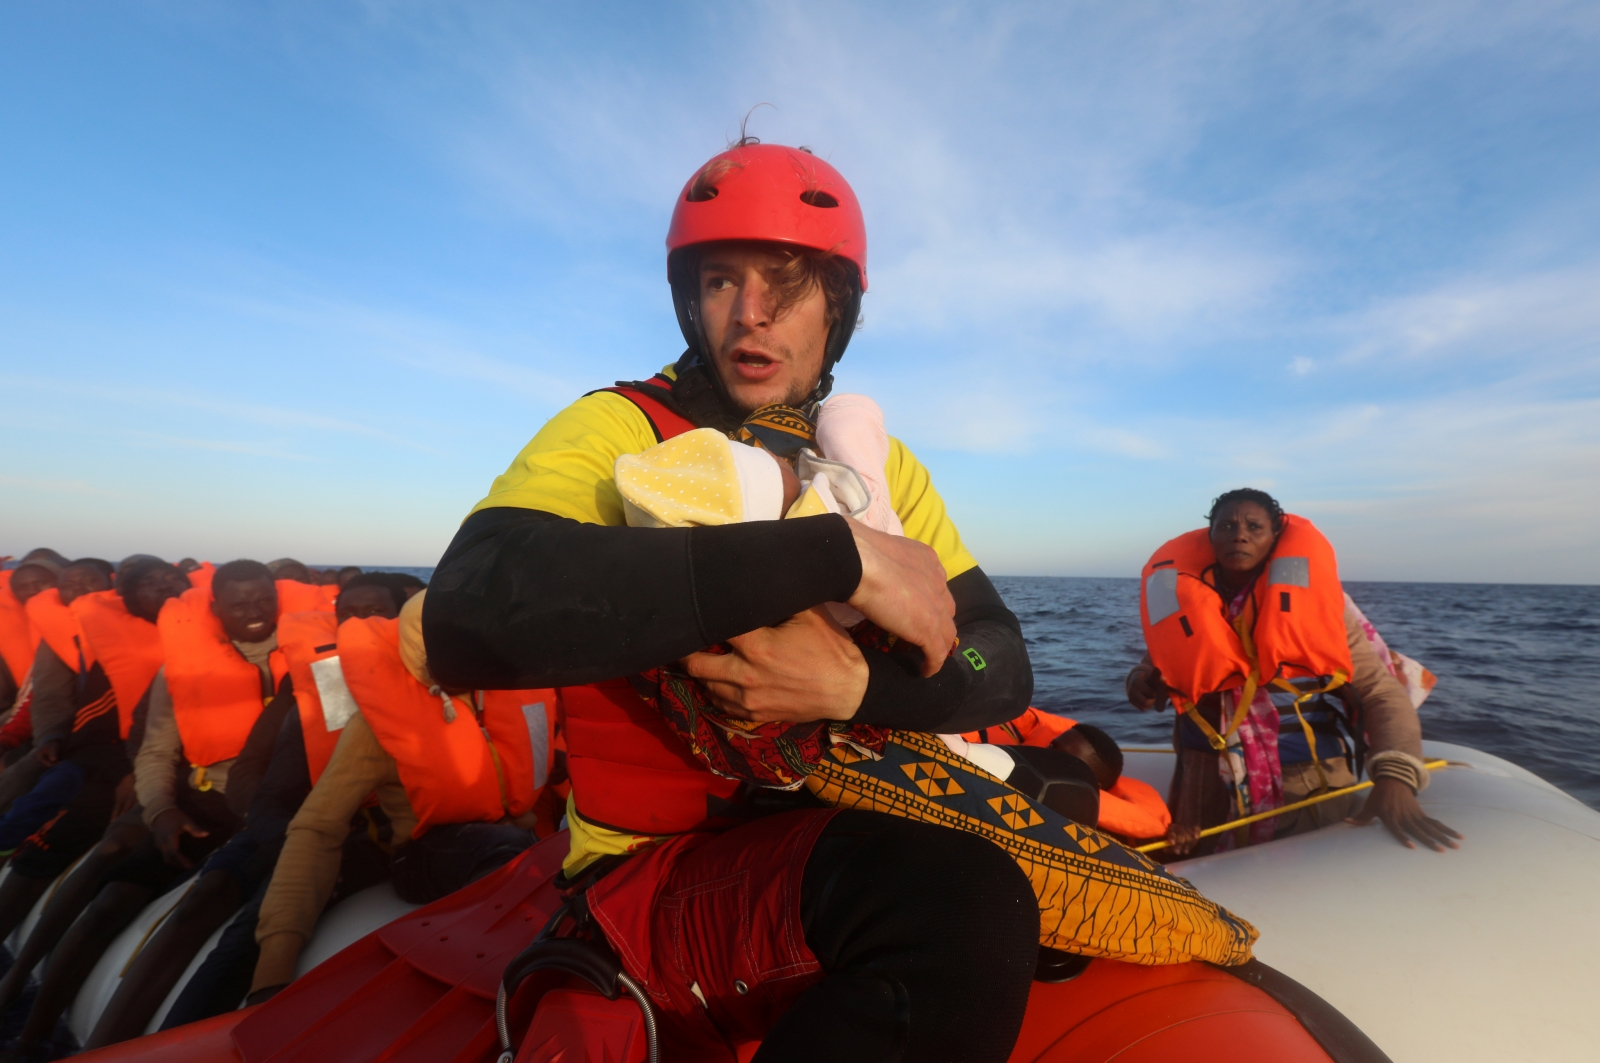 4 day old rescued from mediterranean